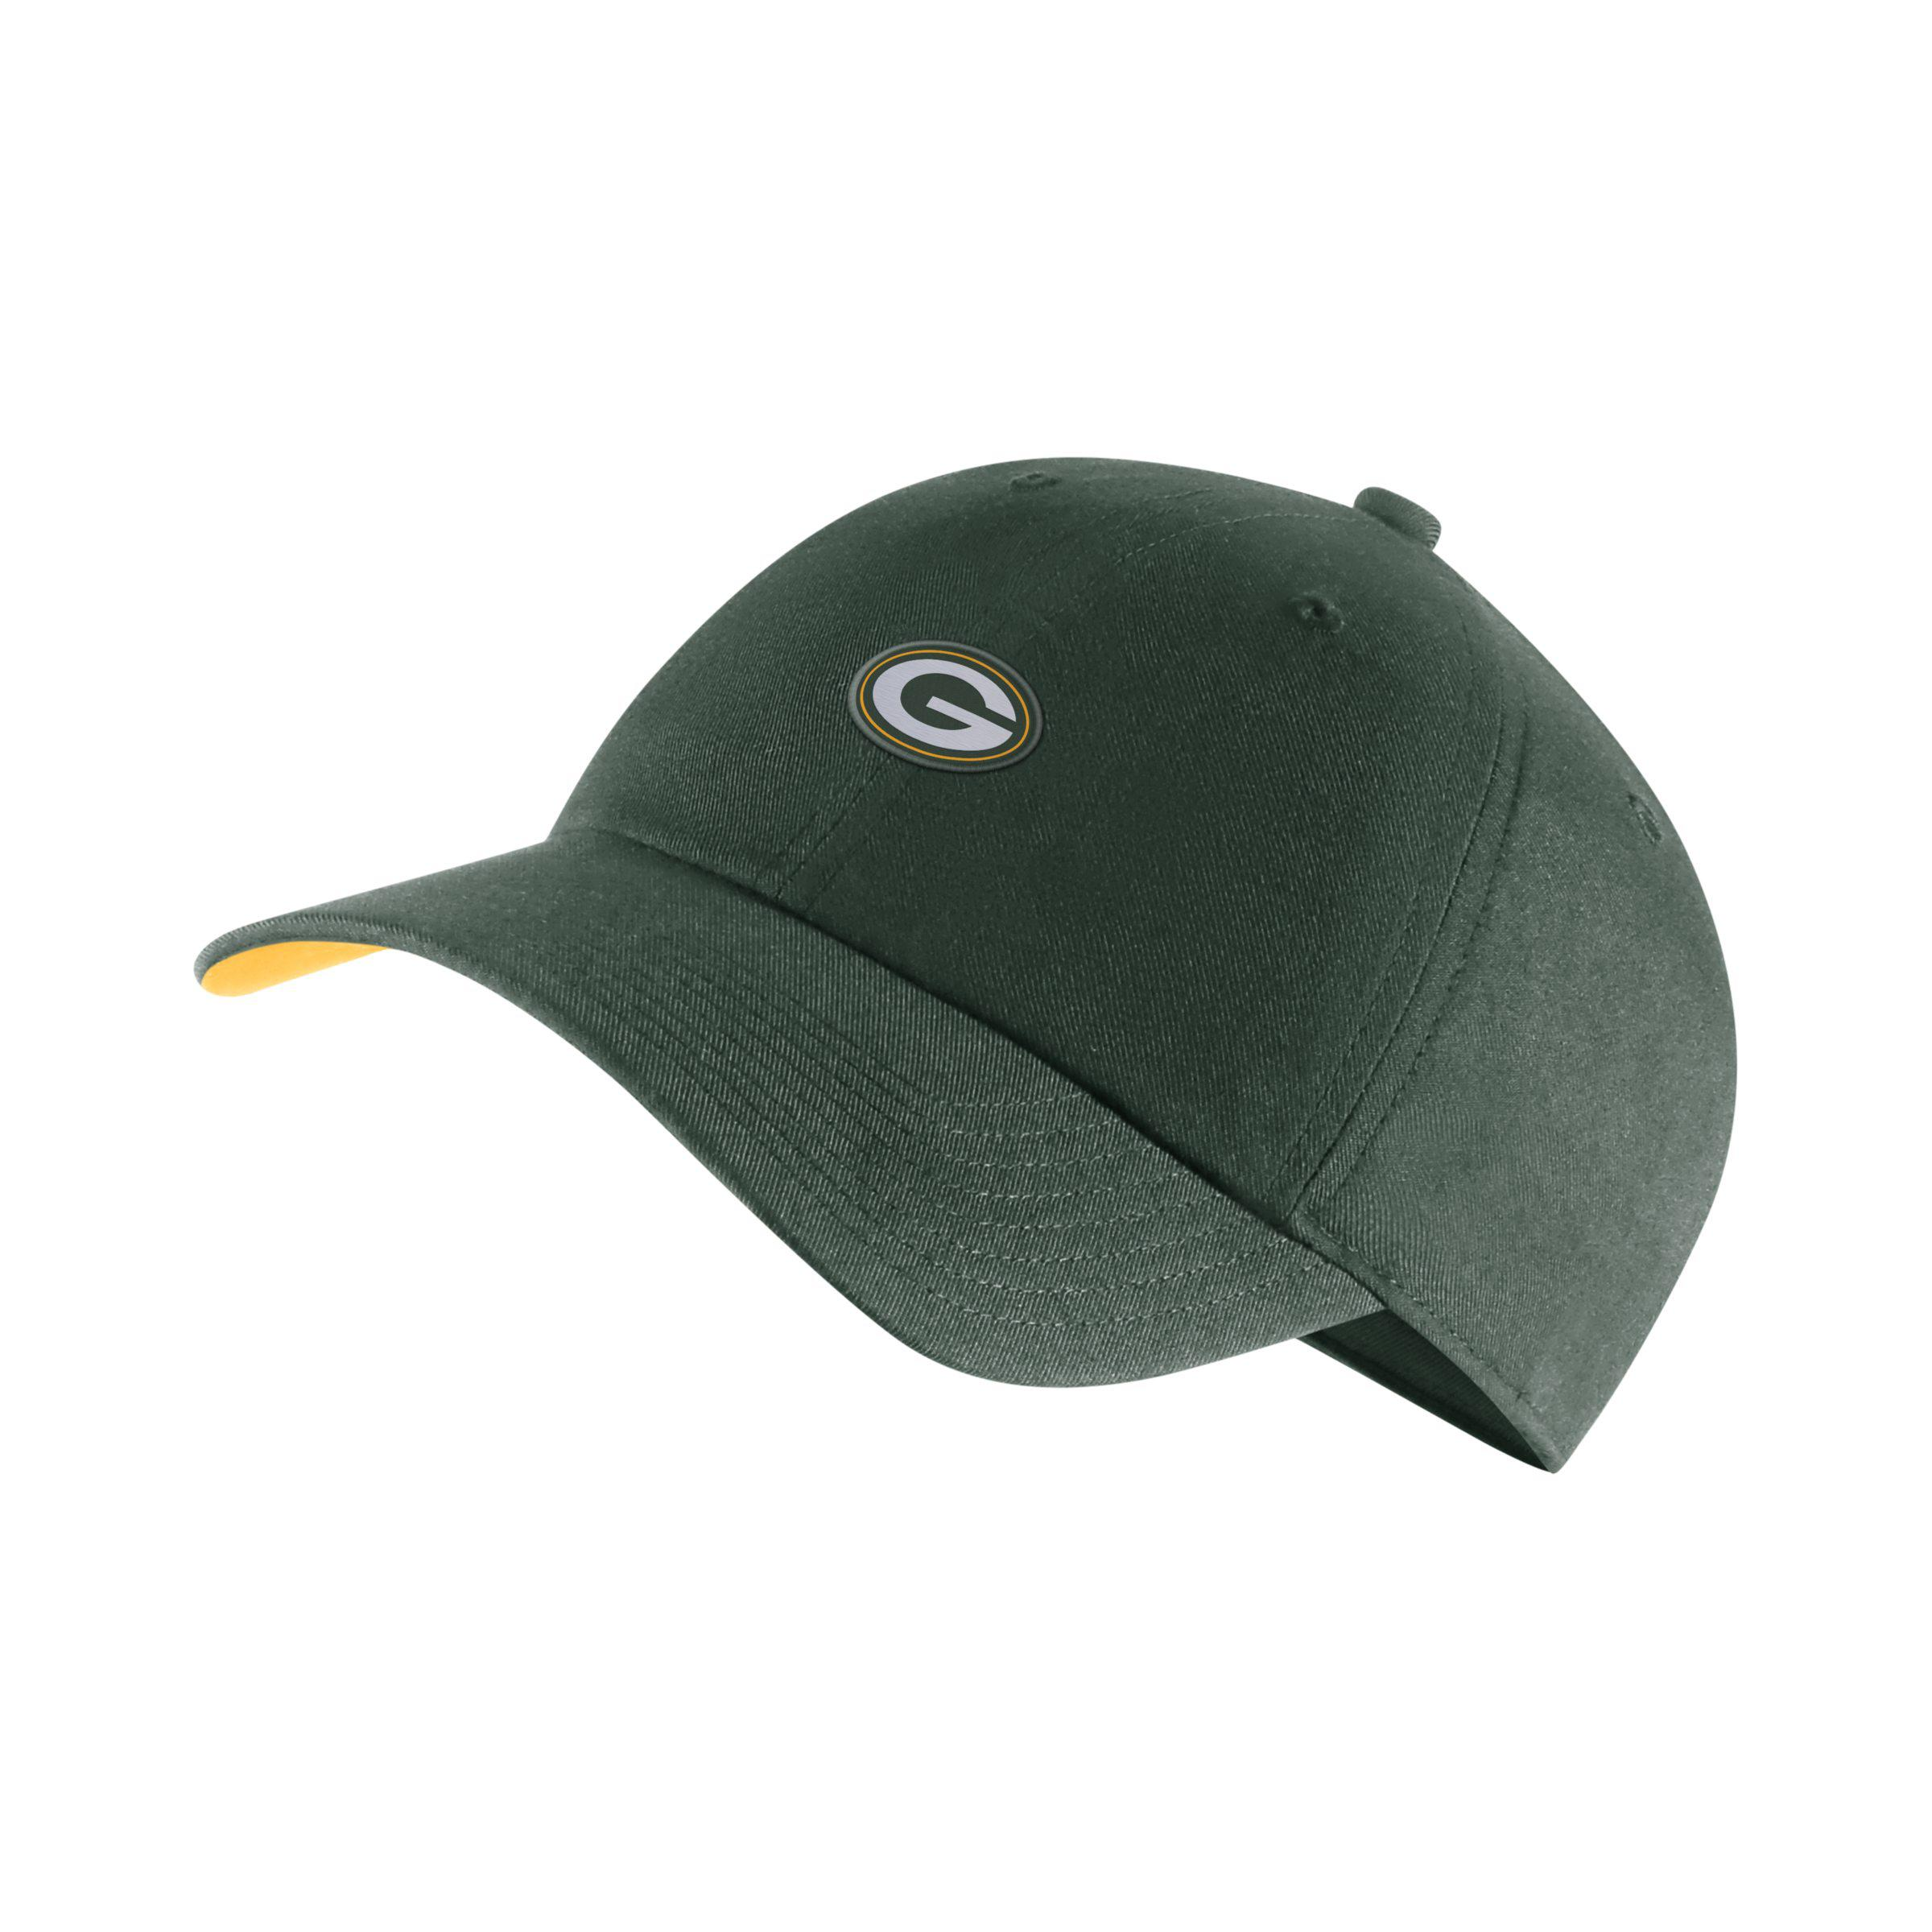 76169f54f32 Nike Heritage86 (nfl Packers) Adjustable Hat in Green - Lyst